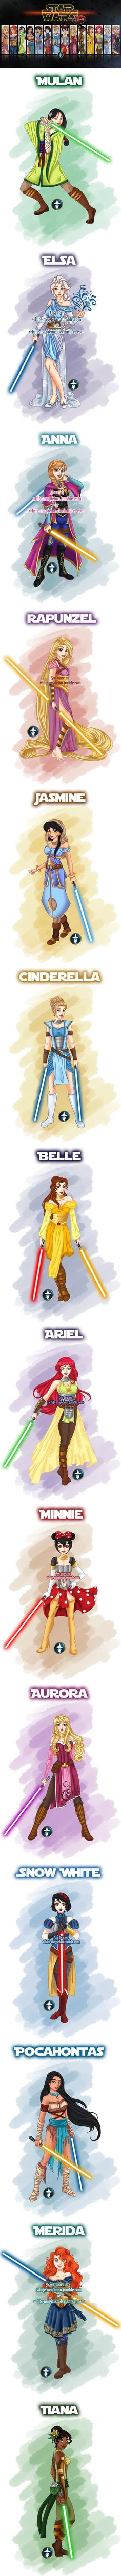 What if Disney Princesses were Star Wars Jedis (by White-Magician) - Disney princess Disney Marvel, Disney Star Wars, Disney And Dreamworks, Disney Pixar, Walt Disney, Disney Characters, Cute Disney, Disney Girls, Funny Disney